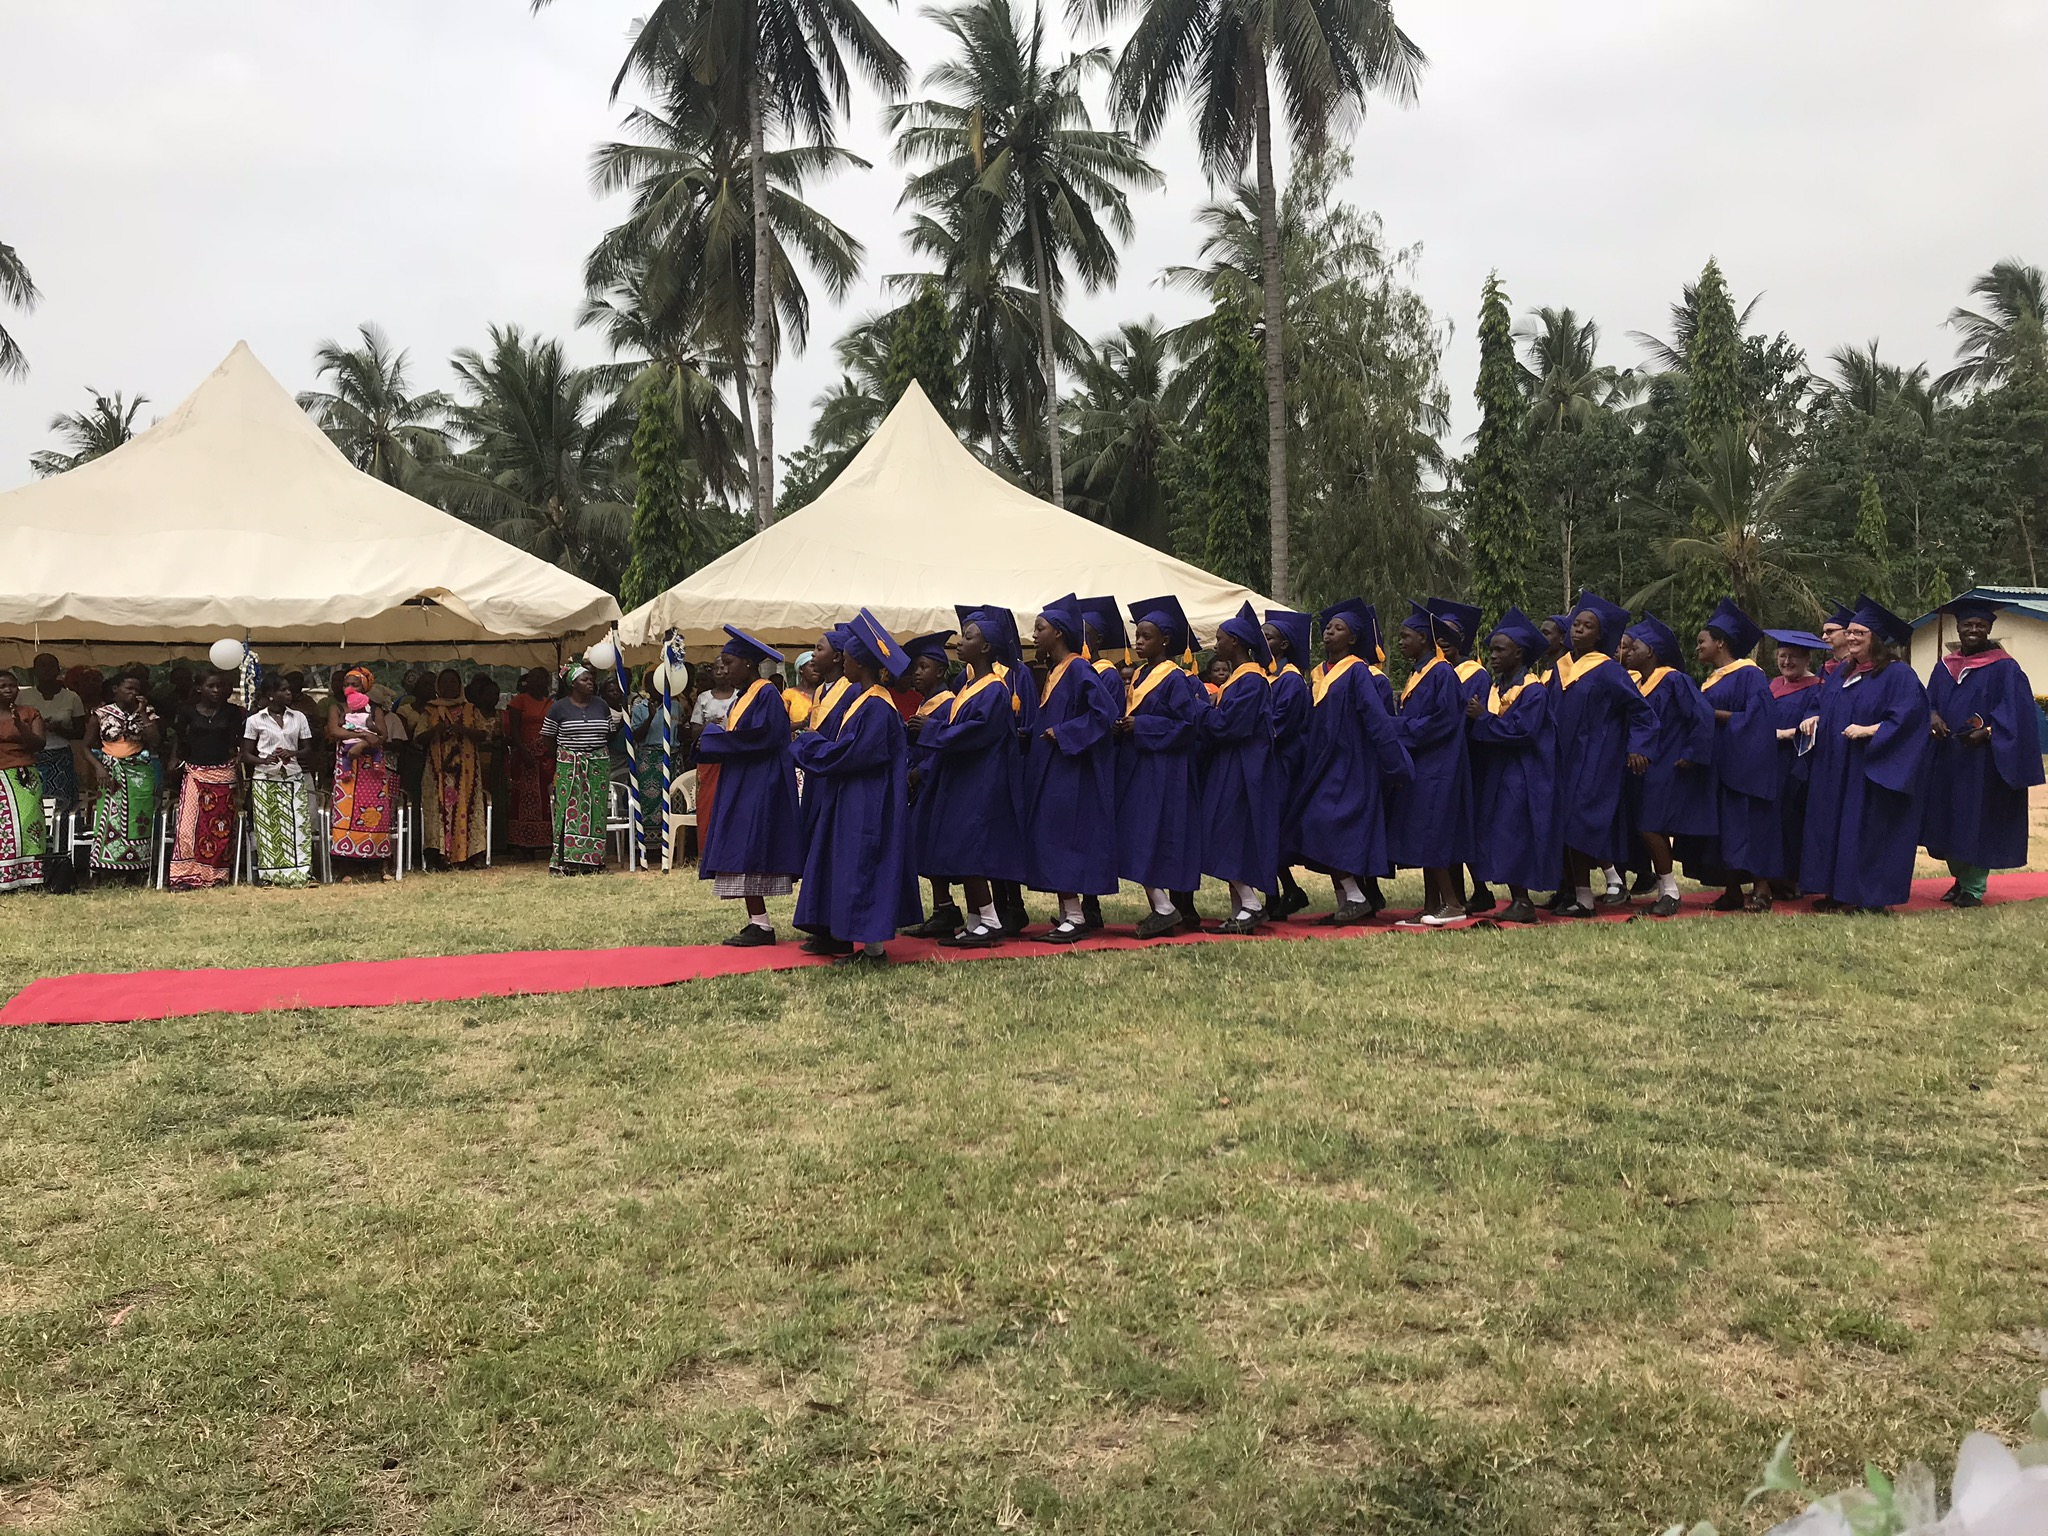 The processional. It is a slow rhythmic step that brought lots of laughter for the adults bringing up the rear!